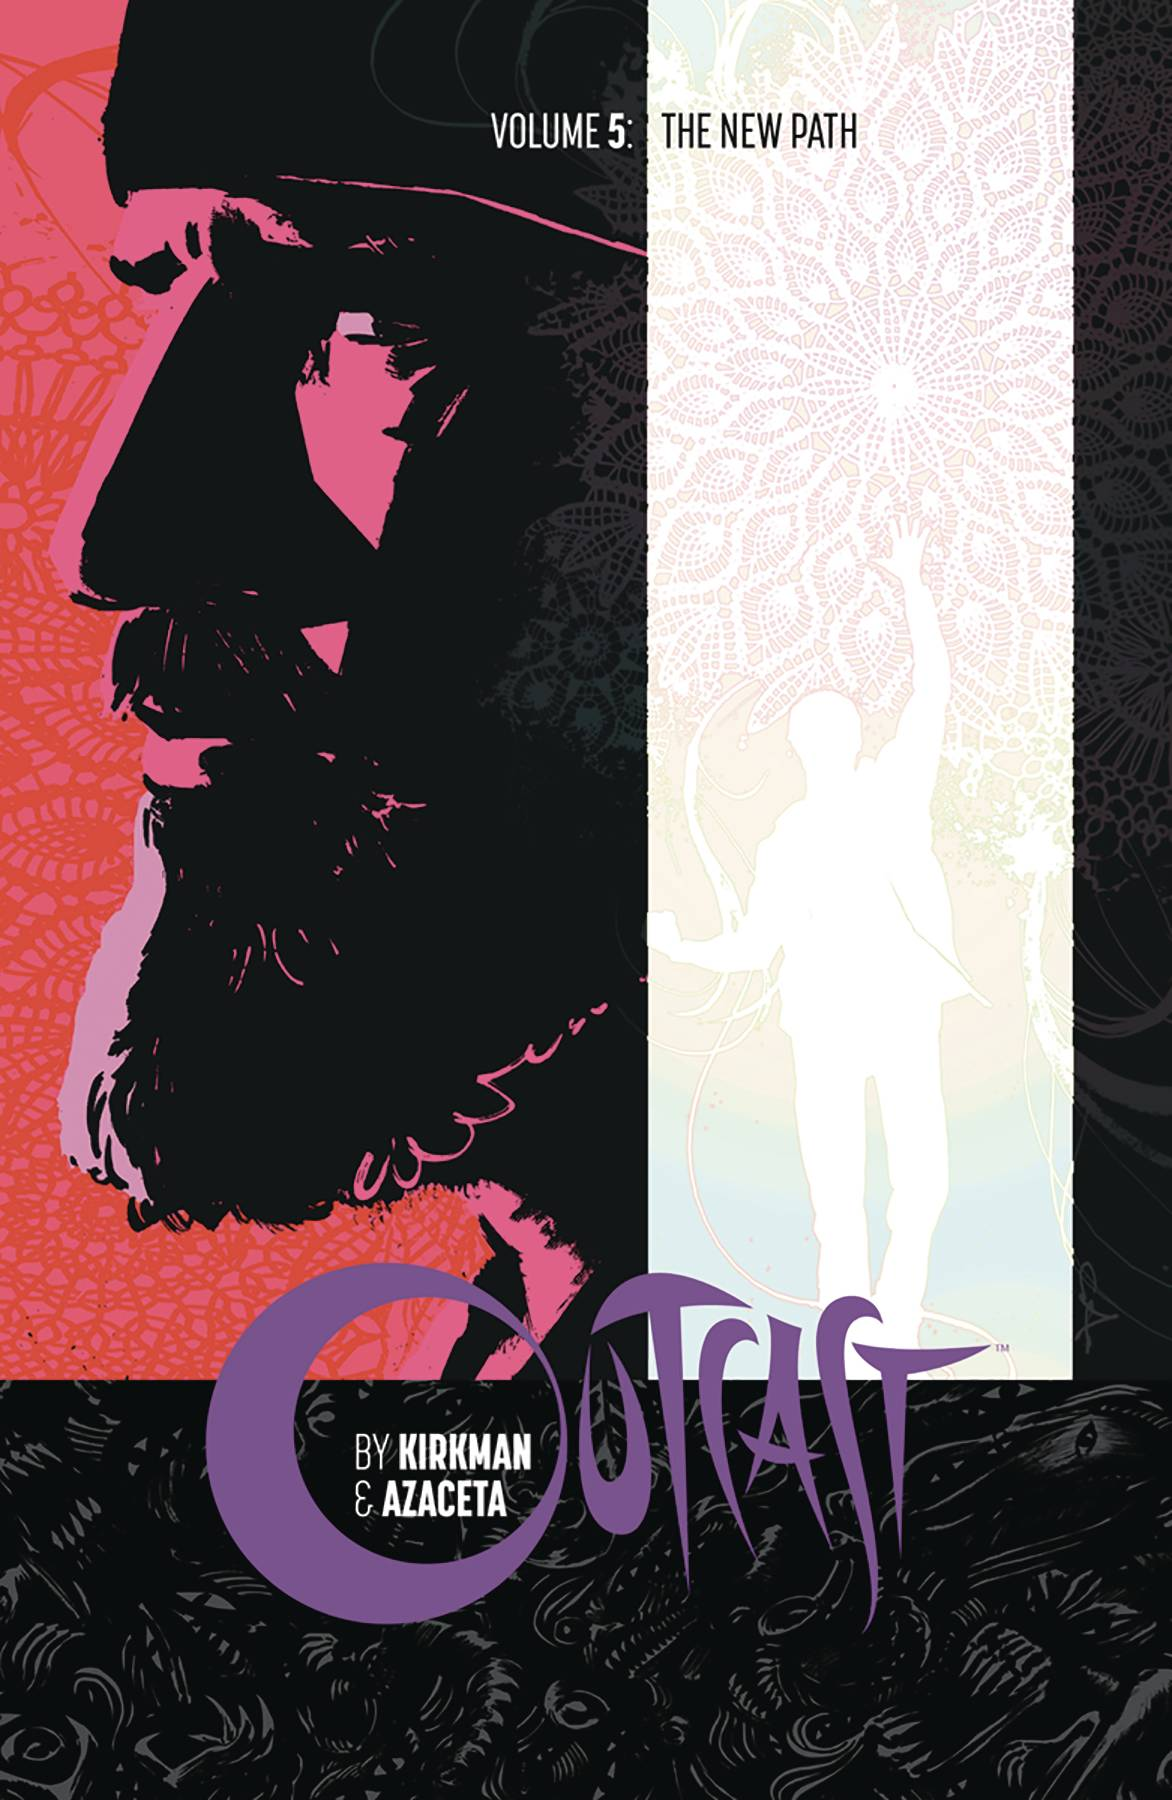 OUTCAST BY KIRKMAN & AZACETA TP VOL 05 (JUL170853) (MR)